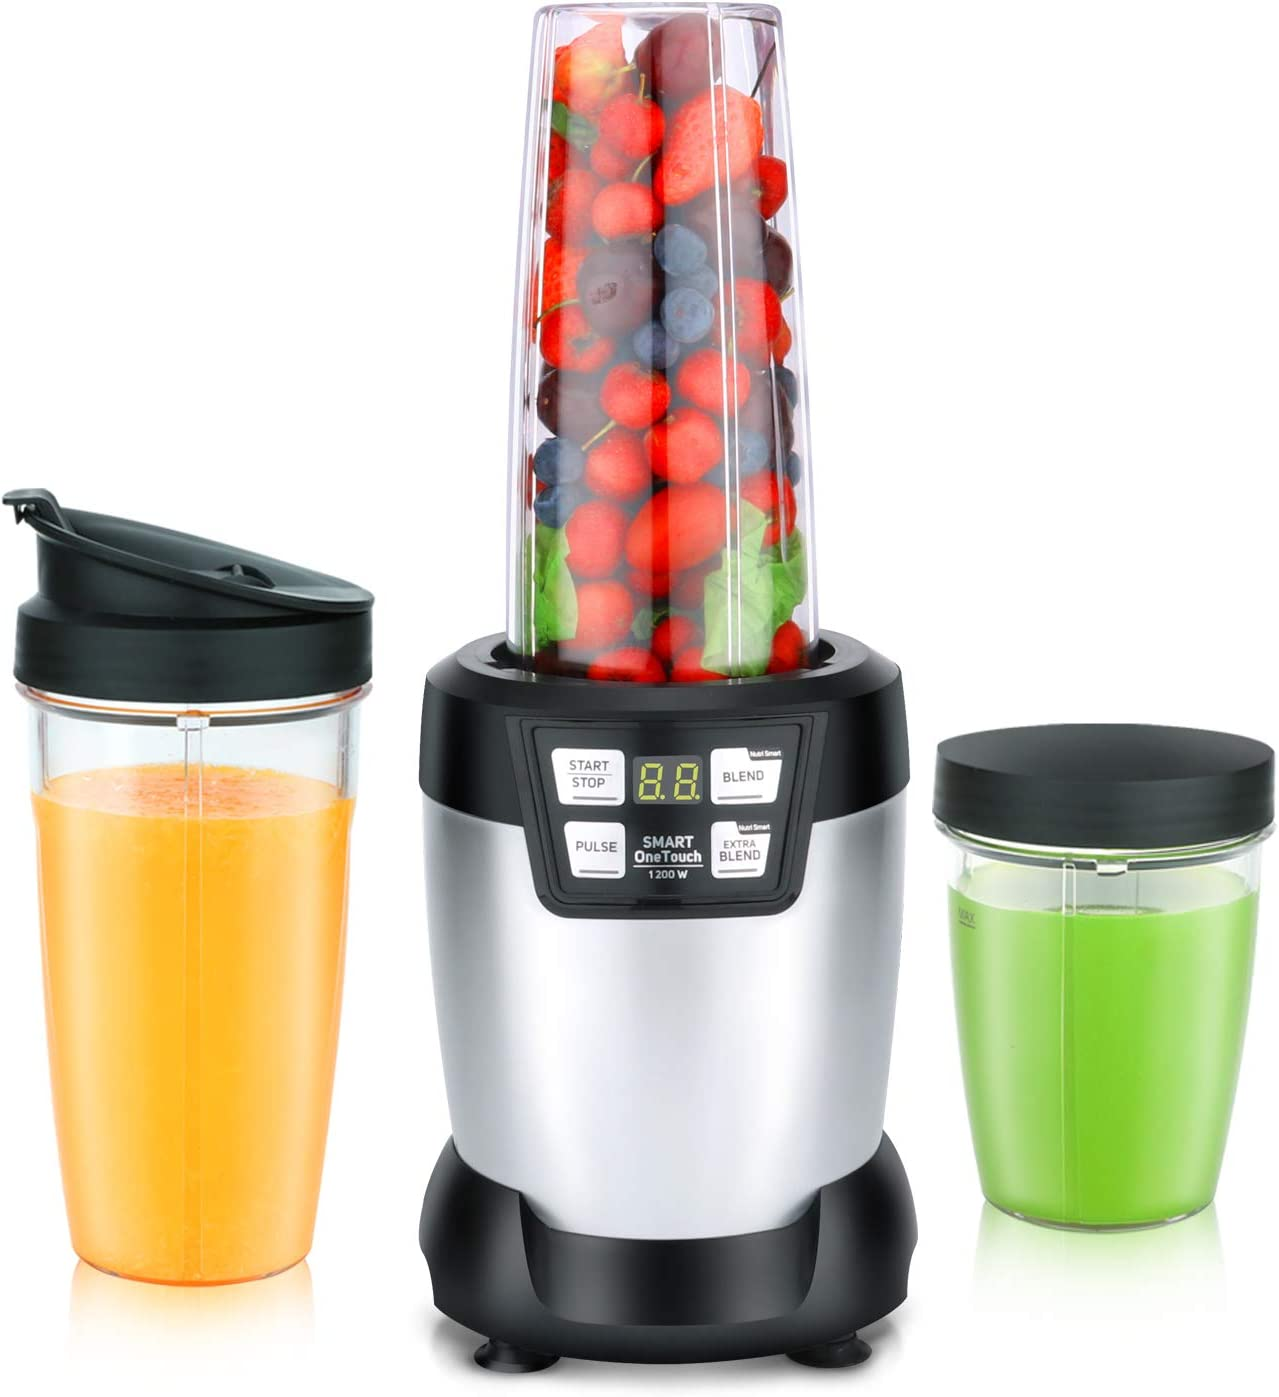 Winlim Personal Blender for Shakes, Smoothies, Food Prep, and Frozen Blending with 1200 Watt Base